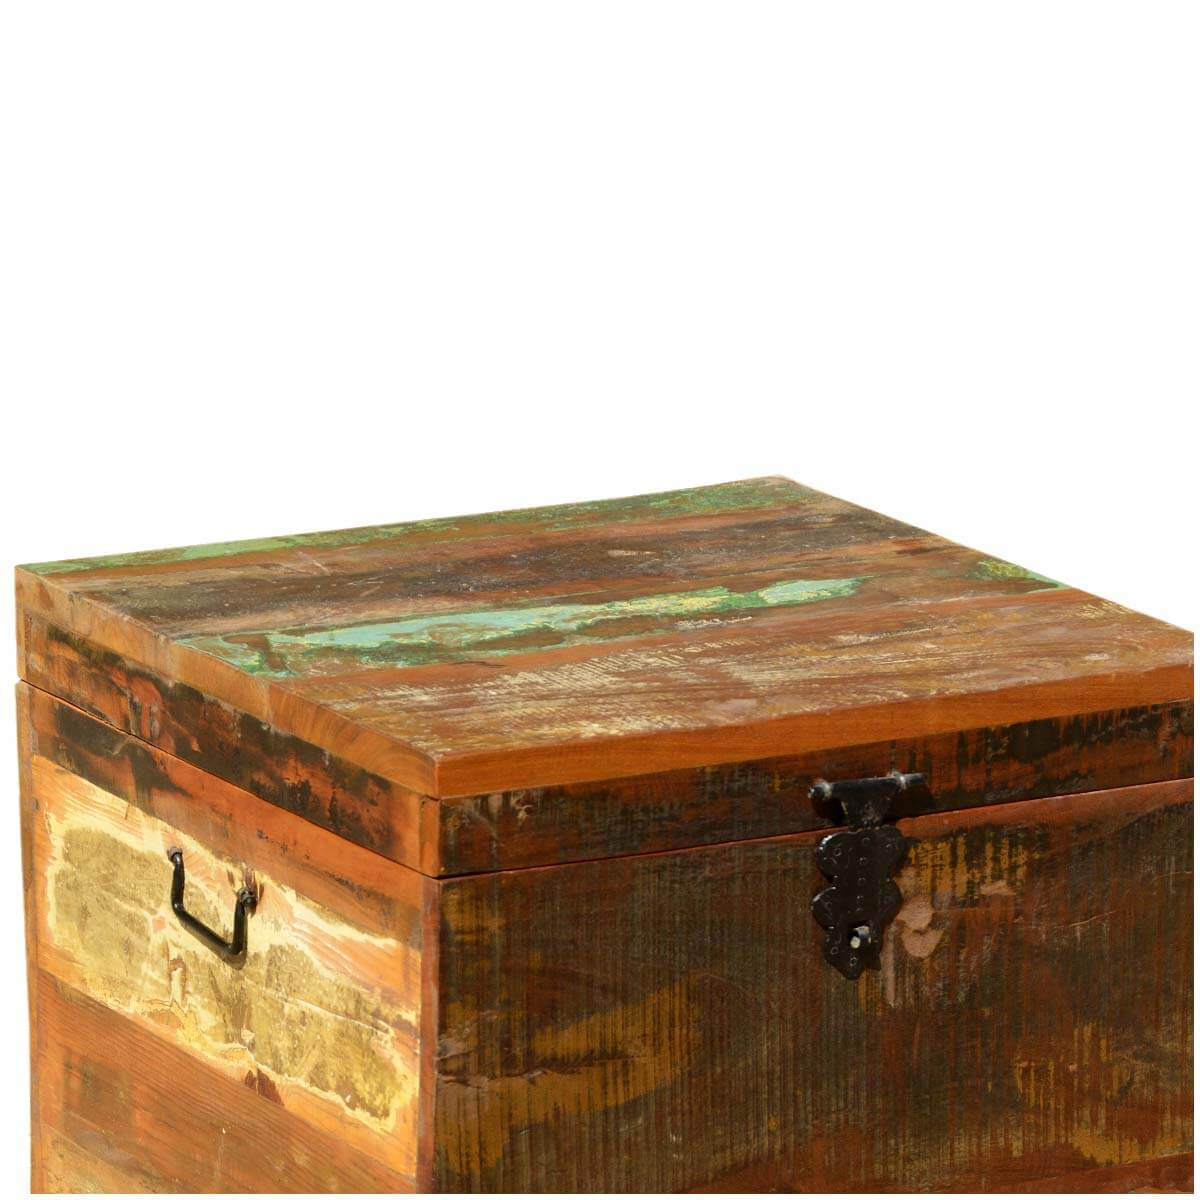 Wood Cube End Table Grinnell Reclaimed Wood Rustic End Table Storage Cube Chest